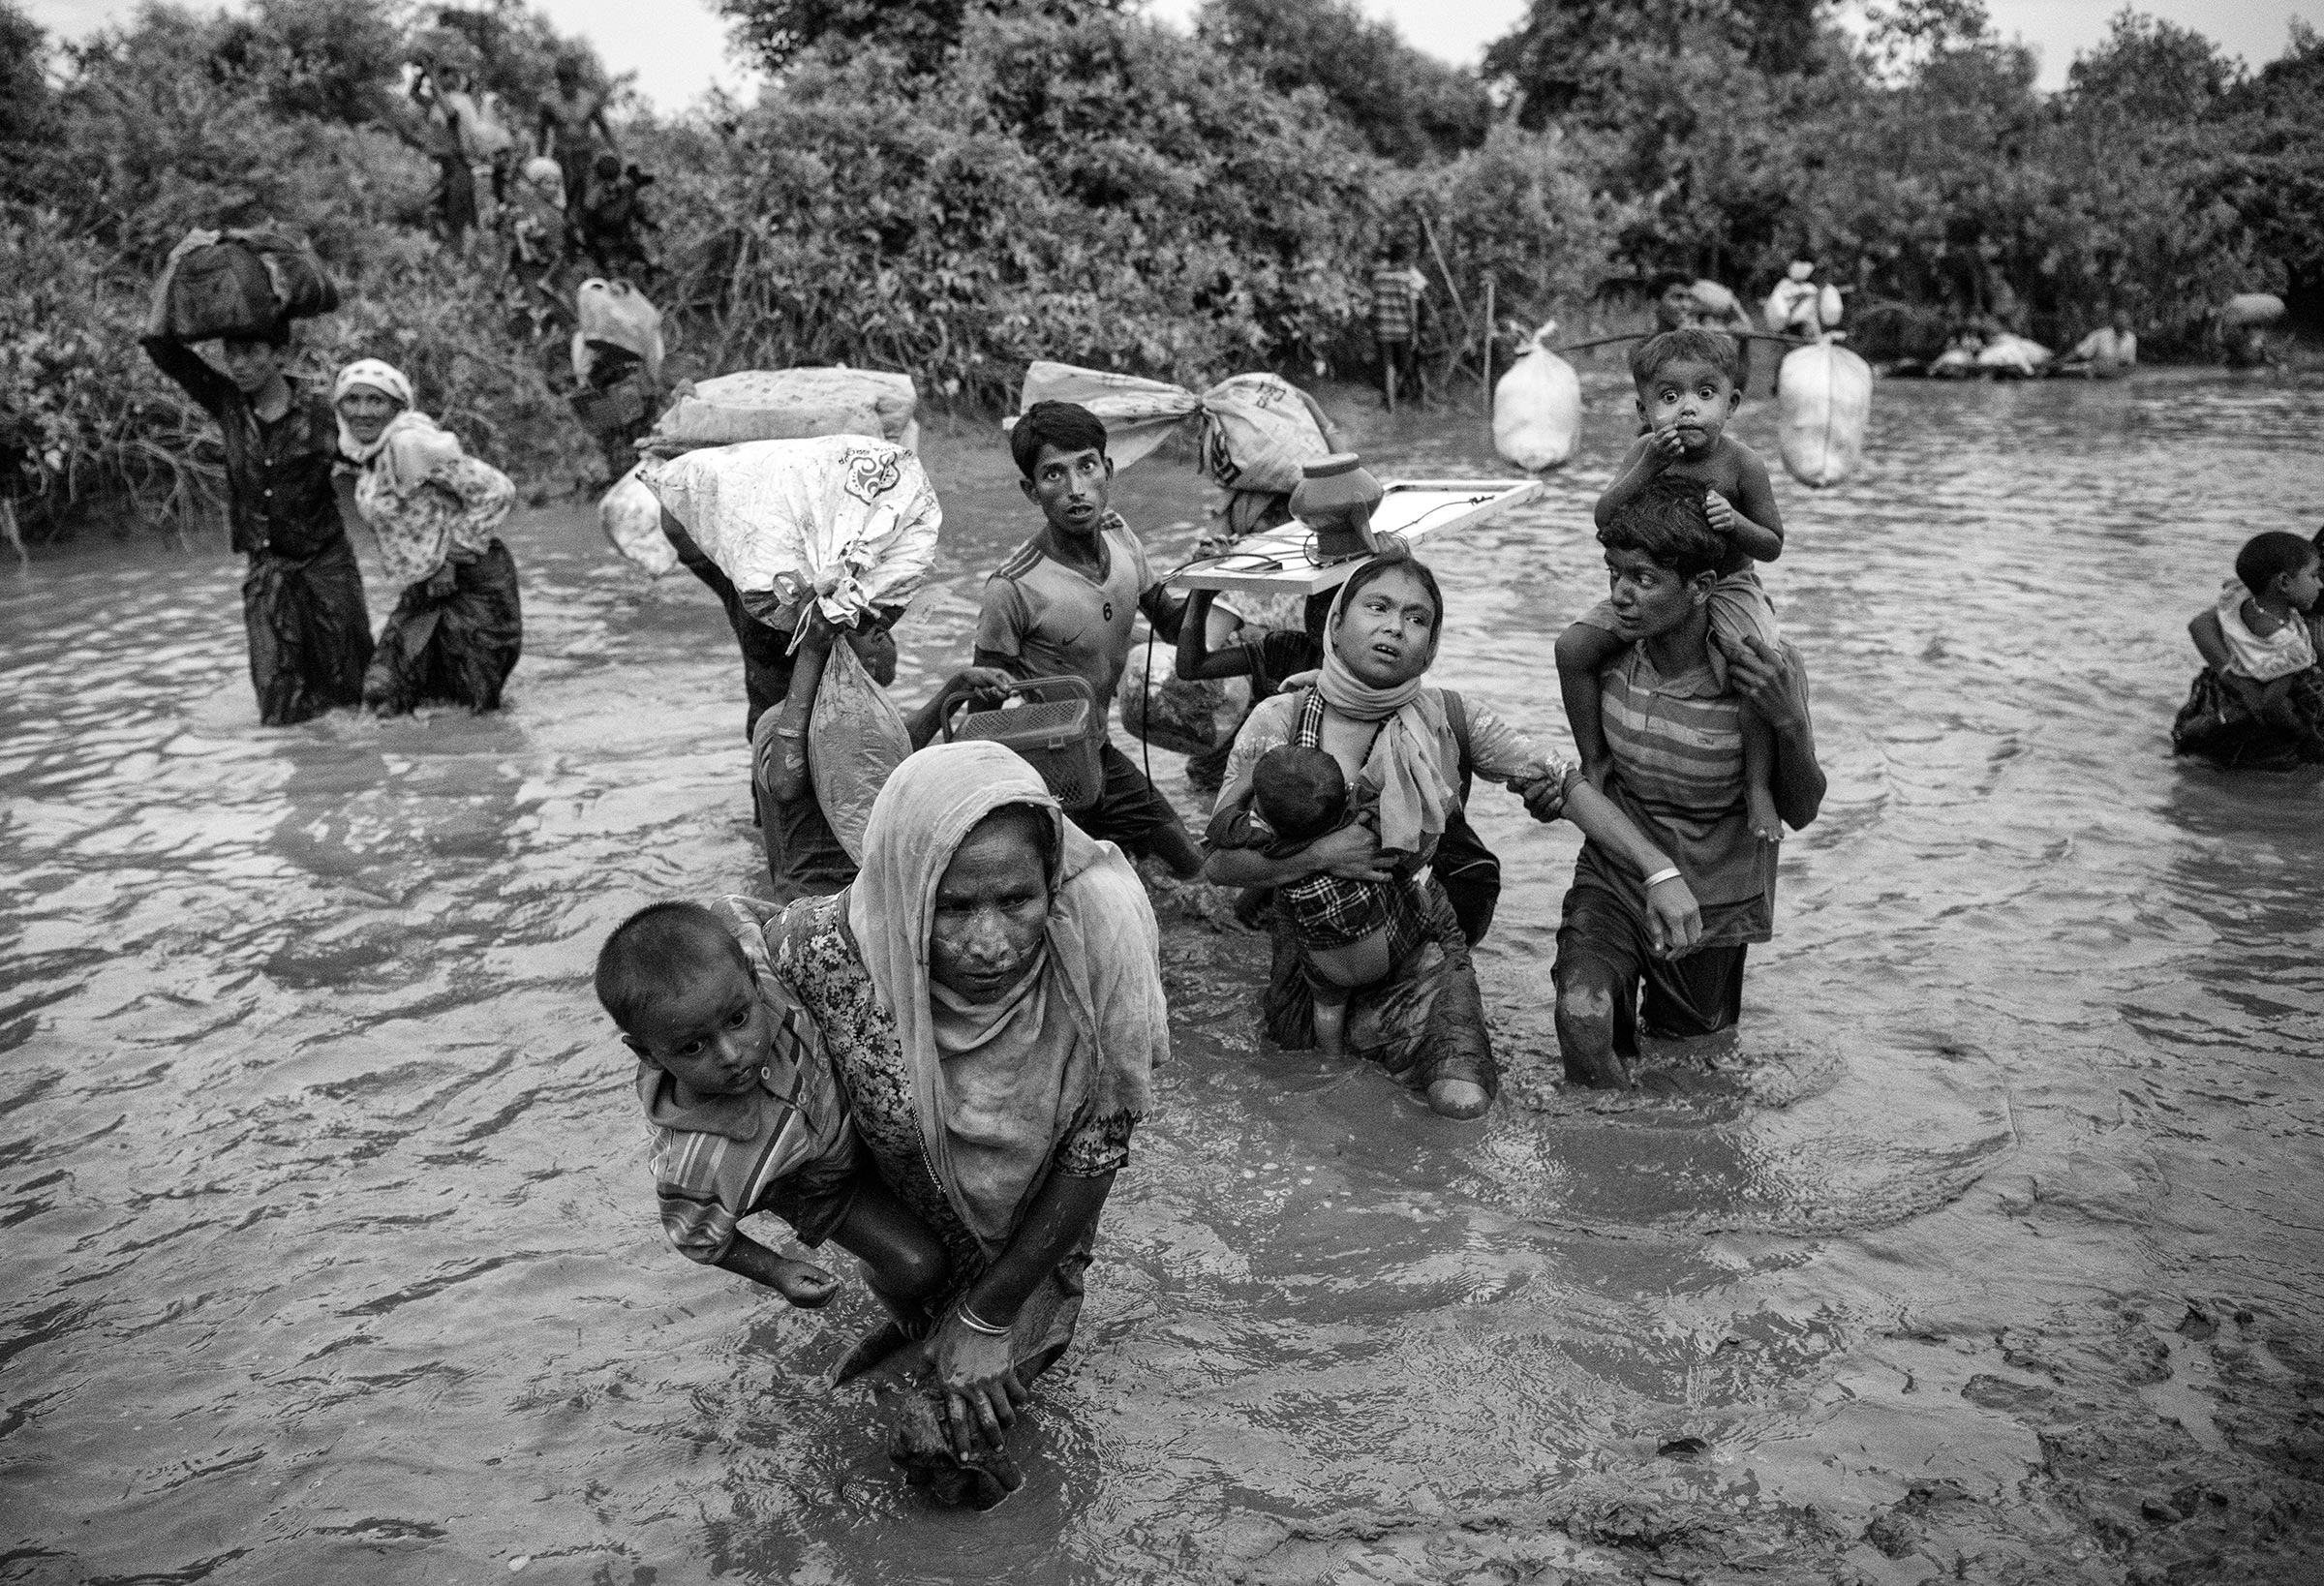 Rohingya Muslim refugees cross a canal as they flee over the border from Myanmar into Bangladesh at the Naf River on Nov. 1, 2017 near Anjuman Para in Cox's Bazar, Bangladesh.